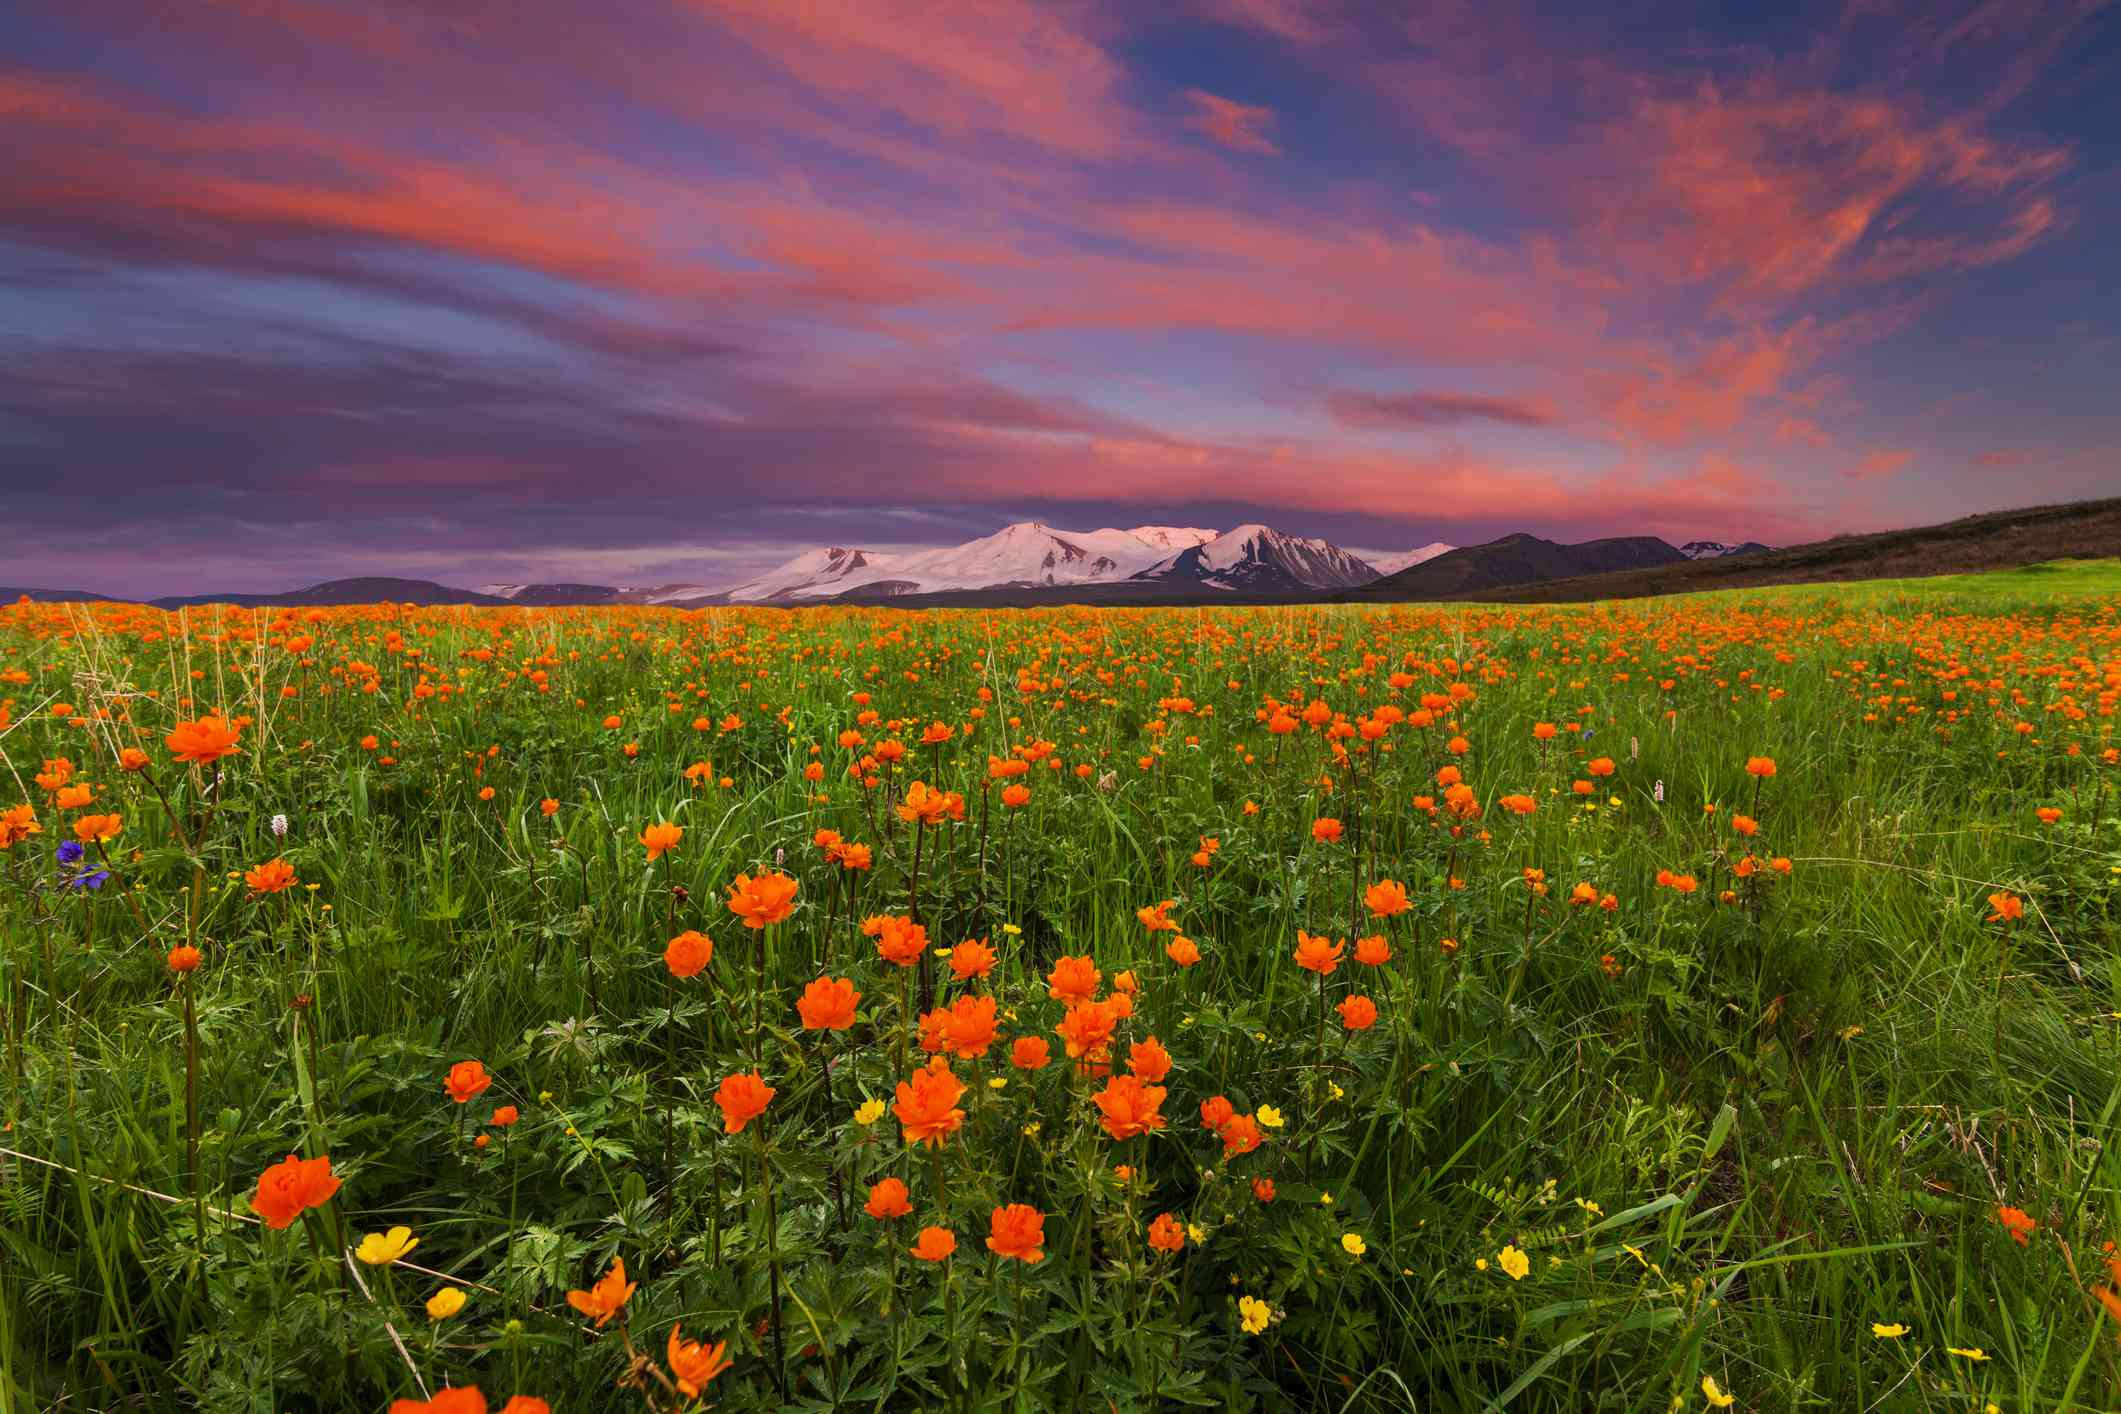 Flowering Russian globe-flower in the mountains